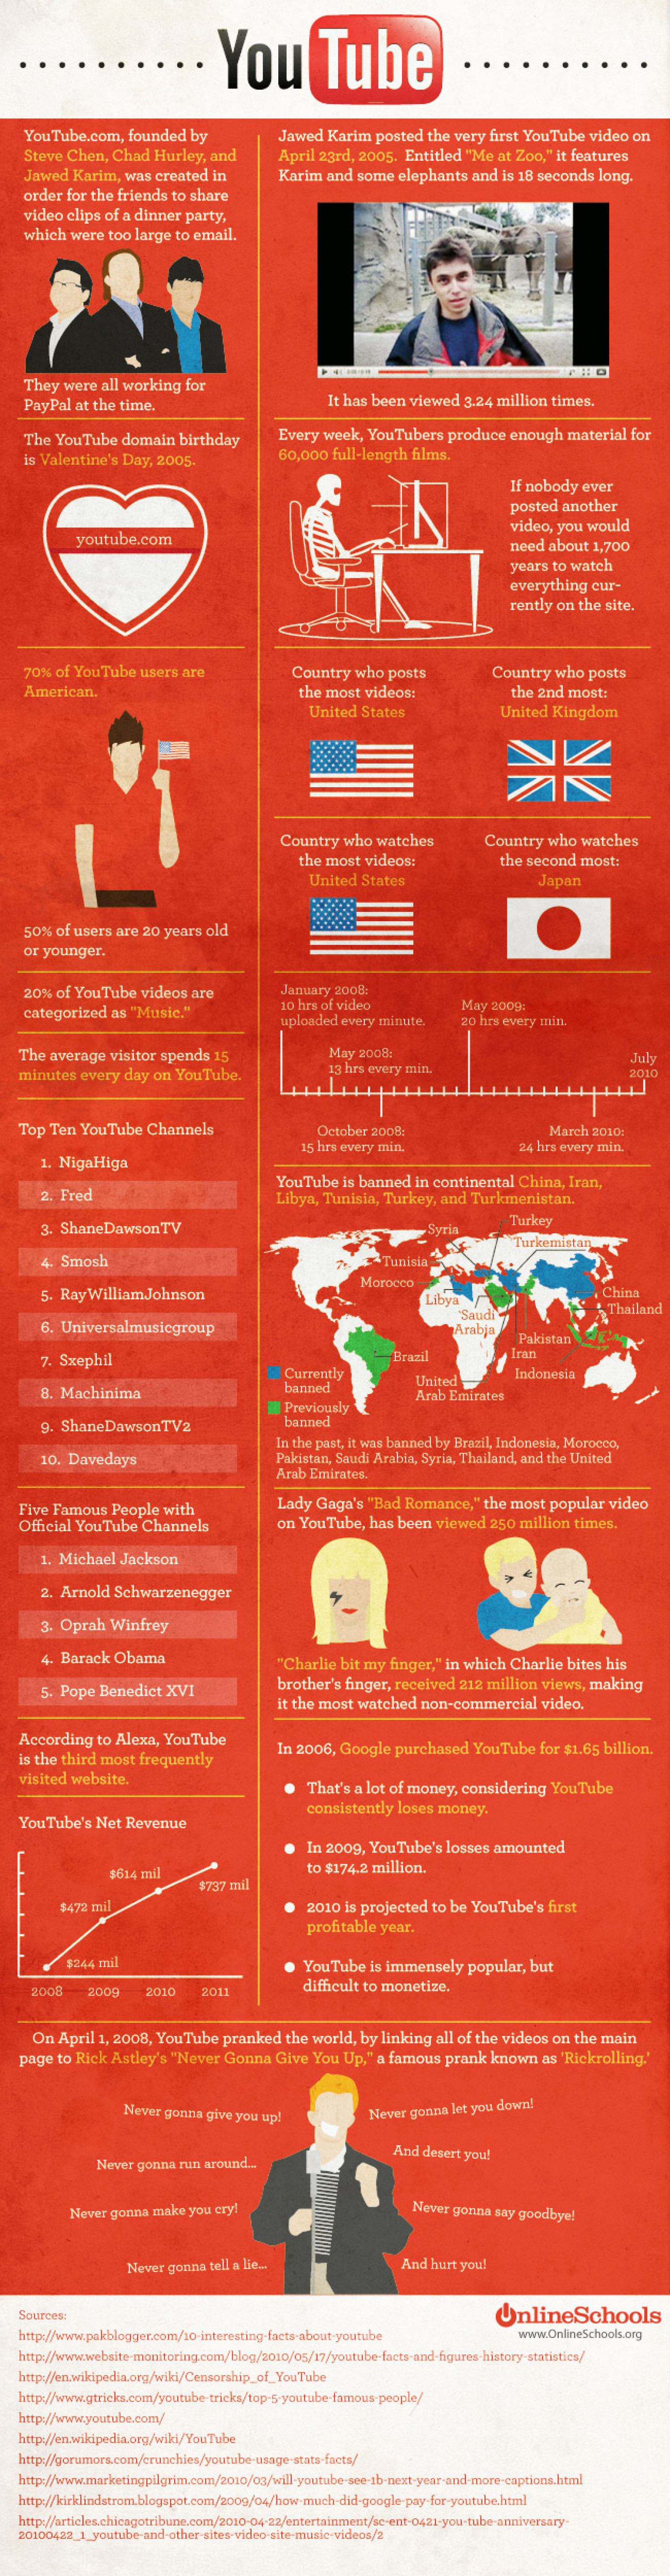 YouTube History and Facts  Infographic